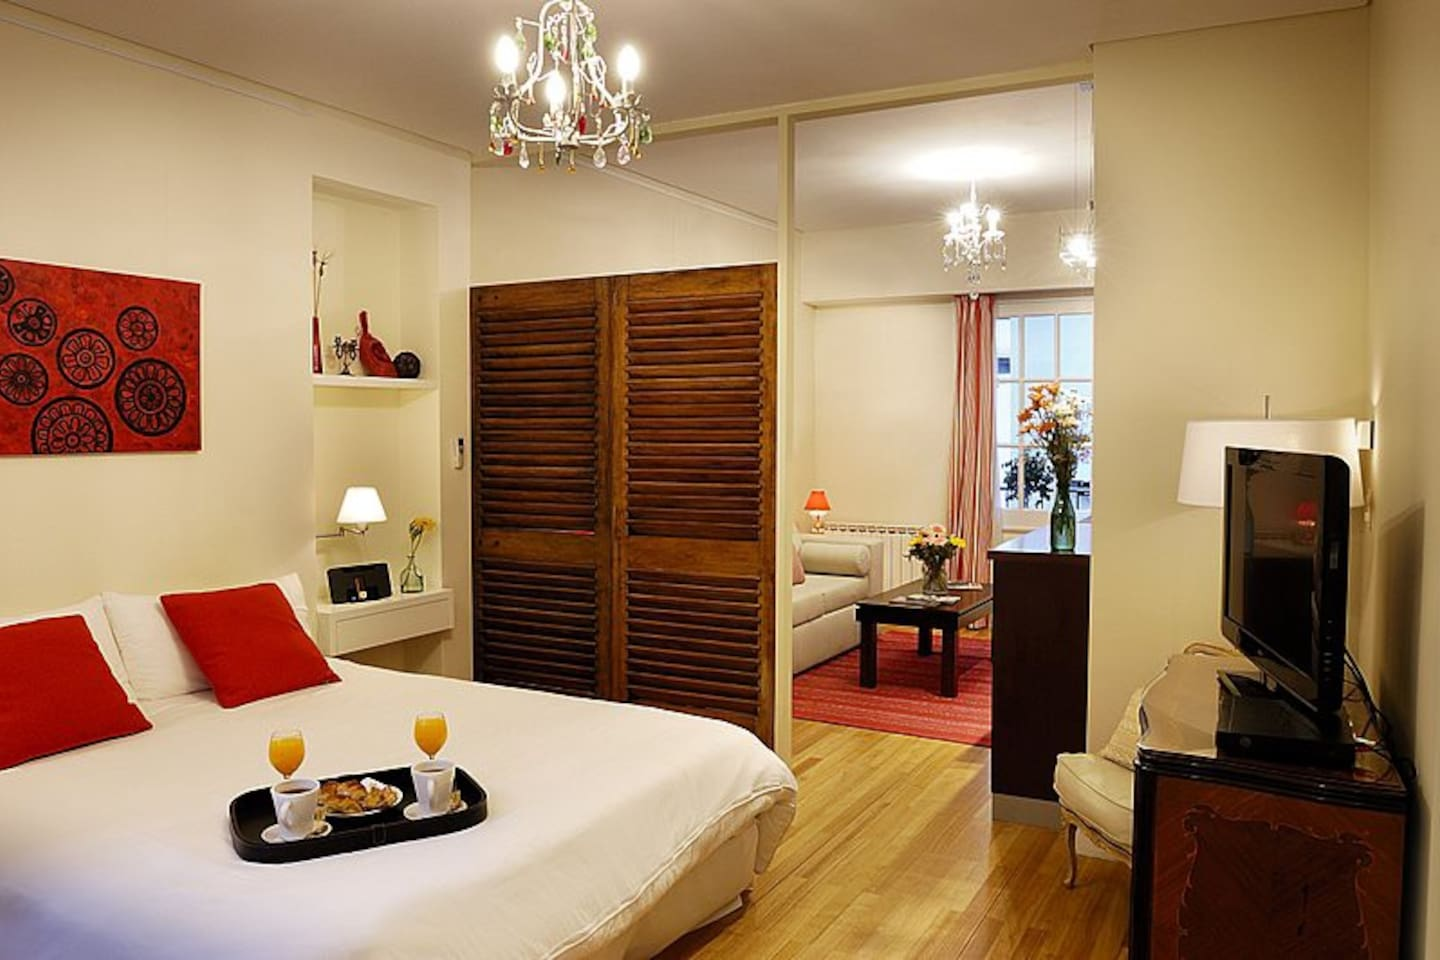 Bedroom (Simmons Beauty-rest King Size)